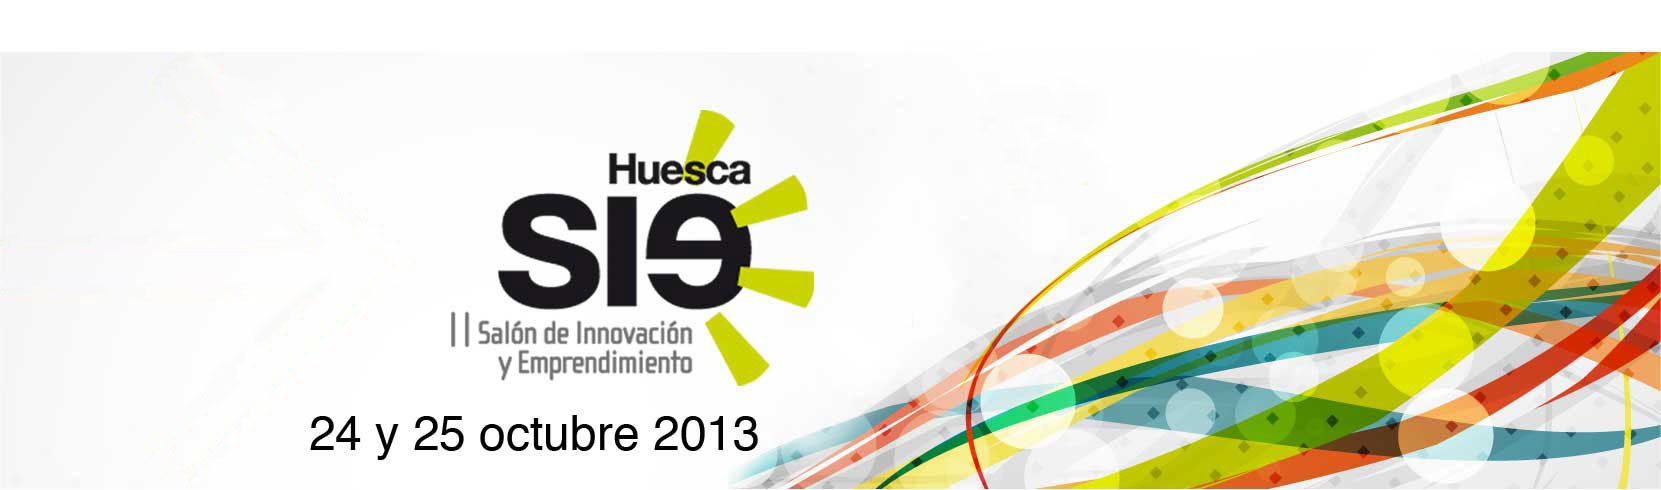 sie-huesca-ilike-community-manager